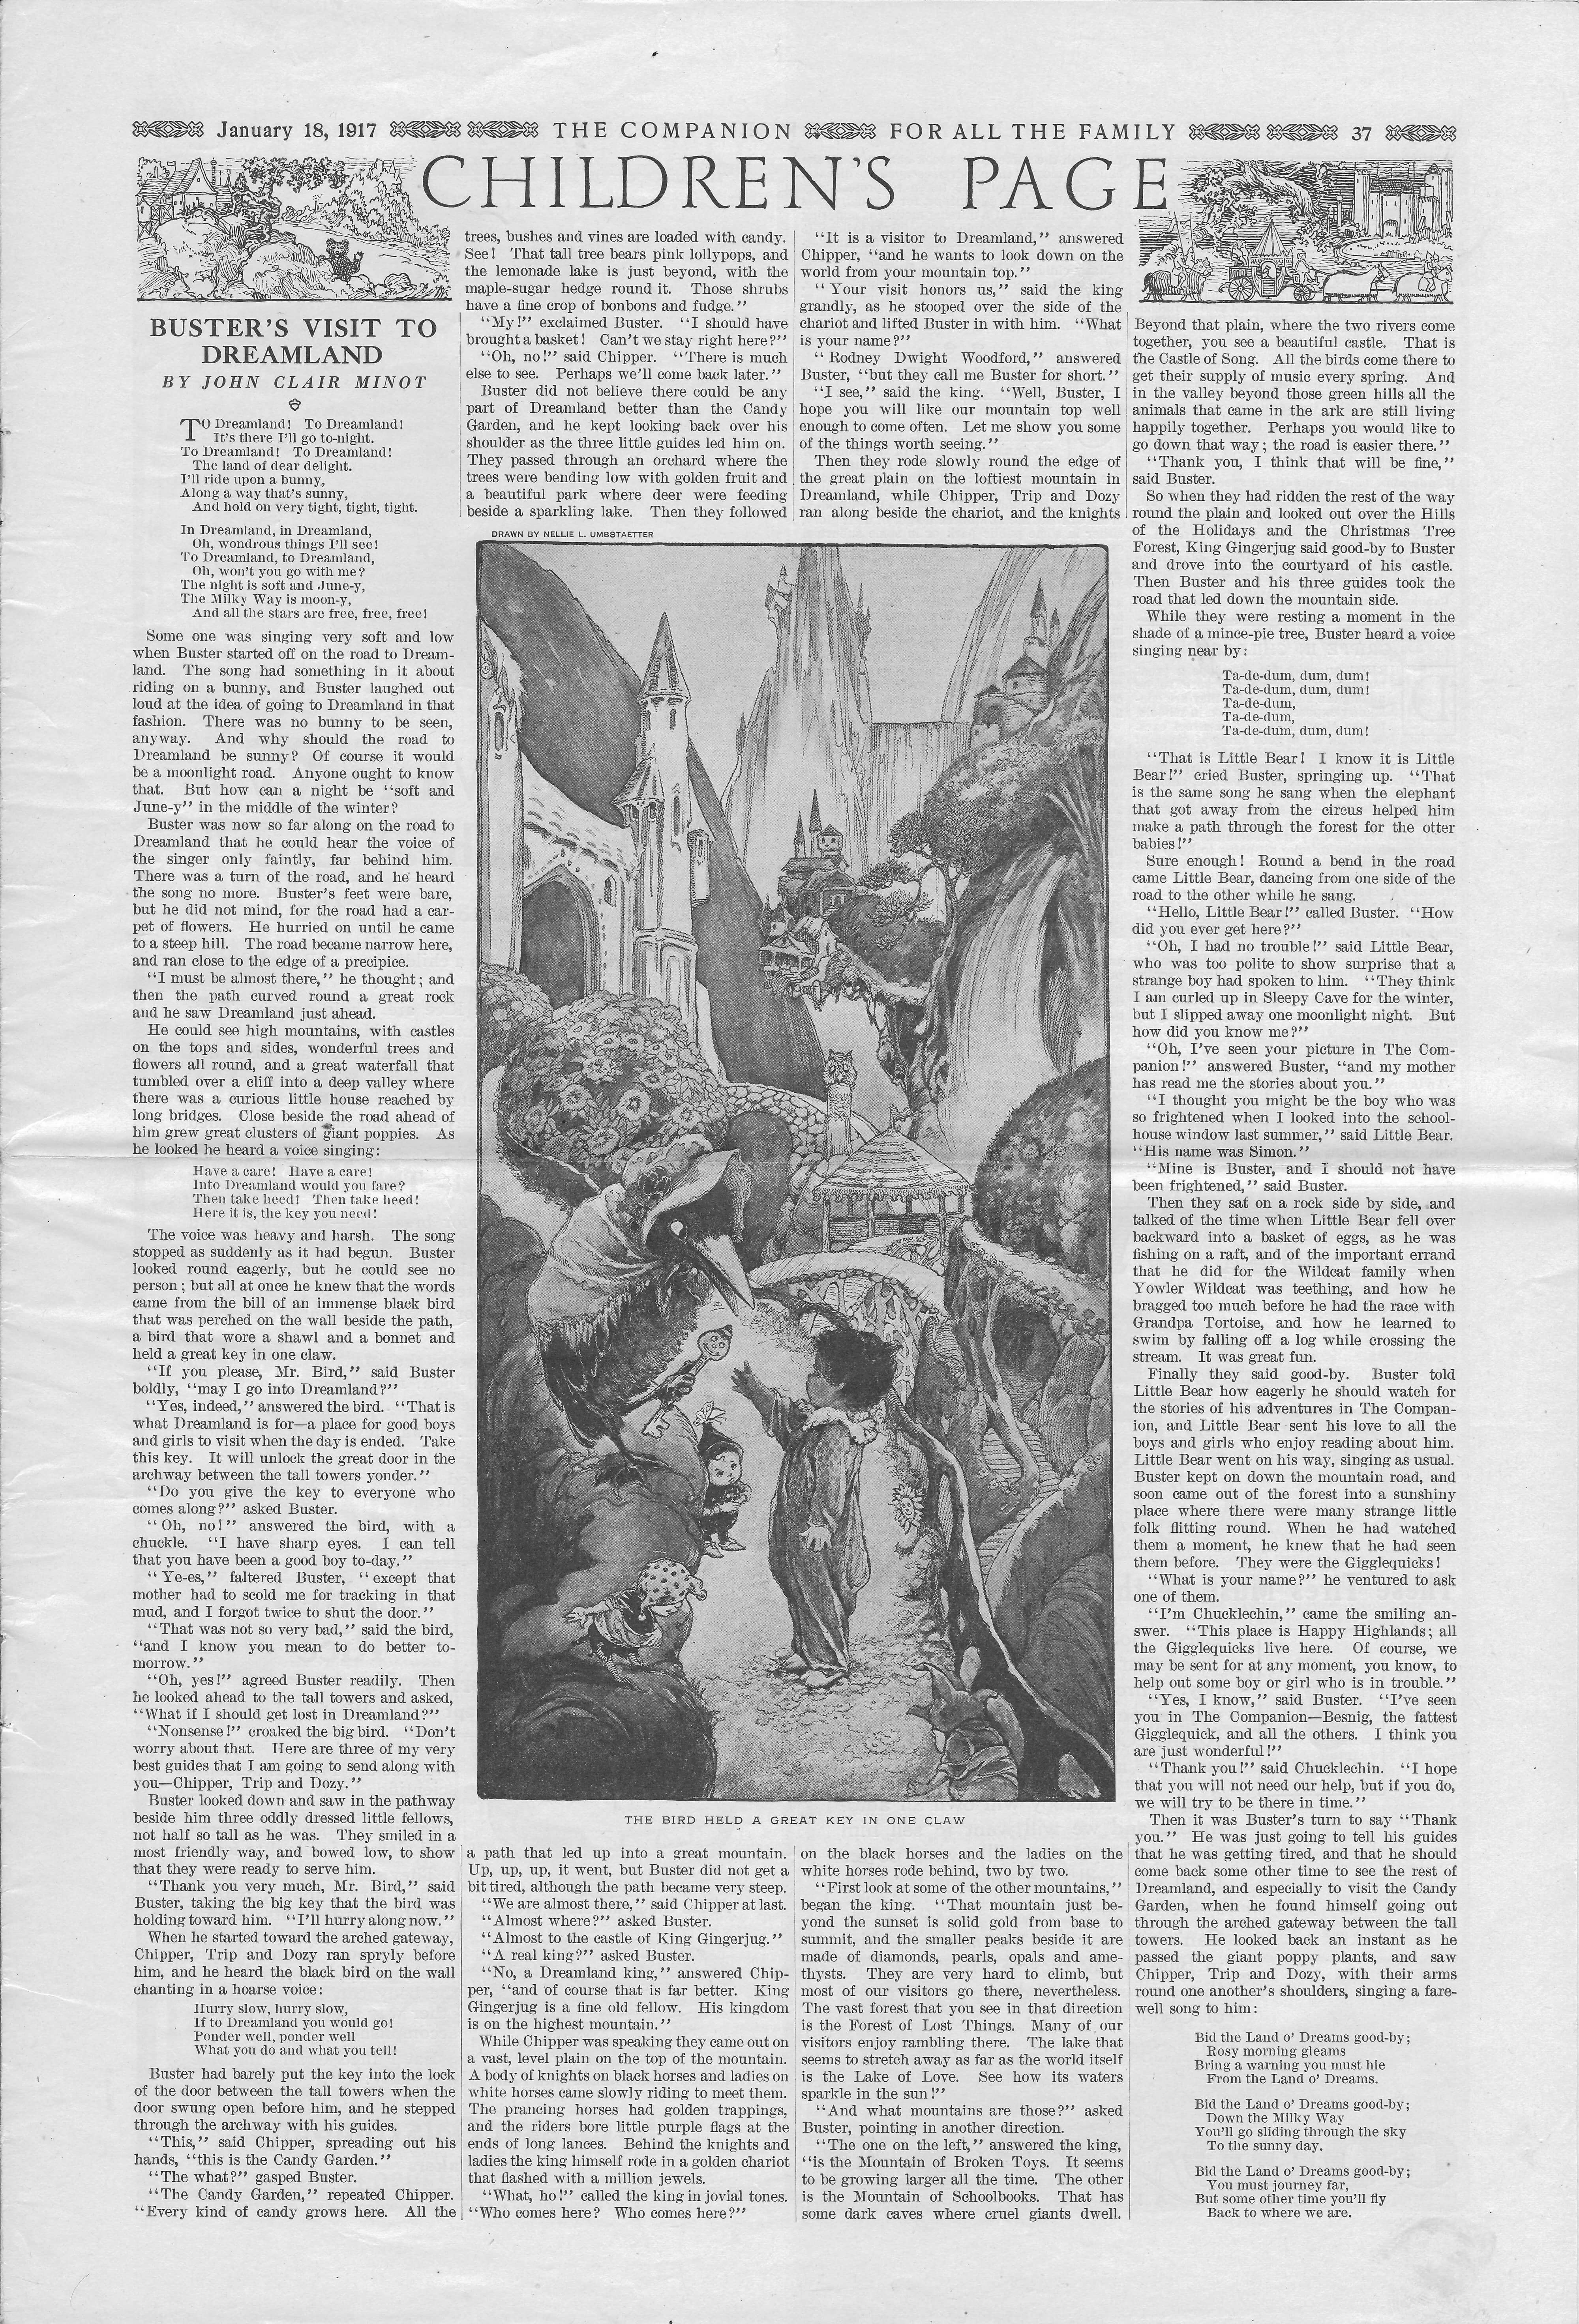 The Youth's Companion - January 18, 1917 - Page 37